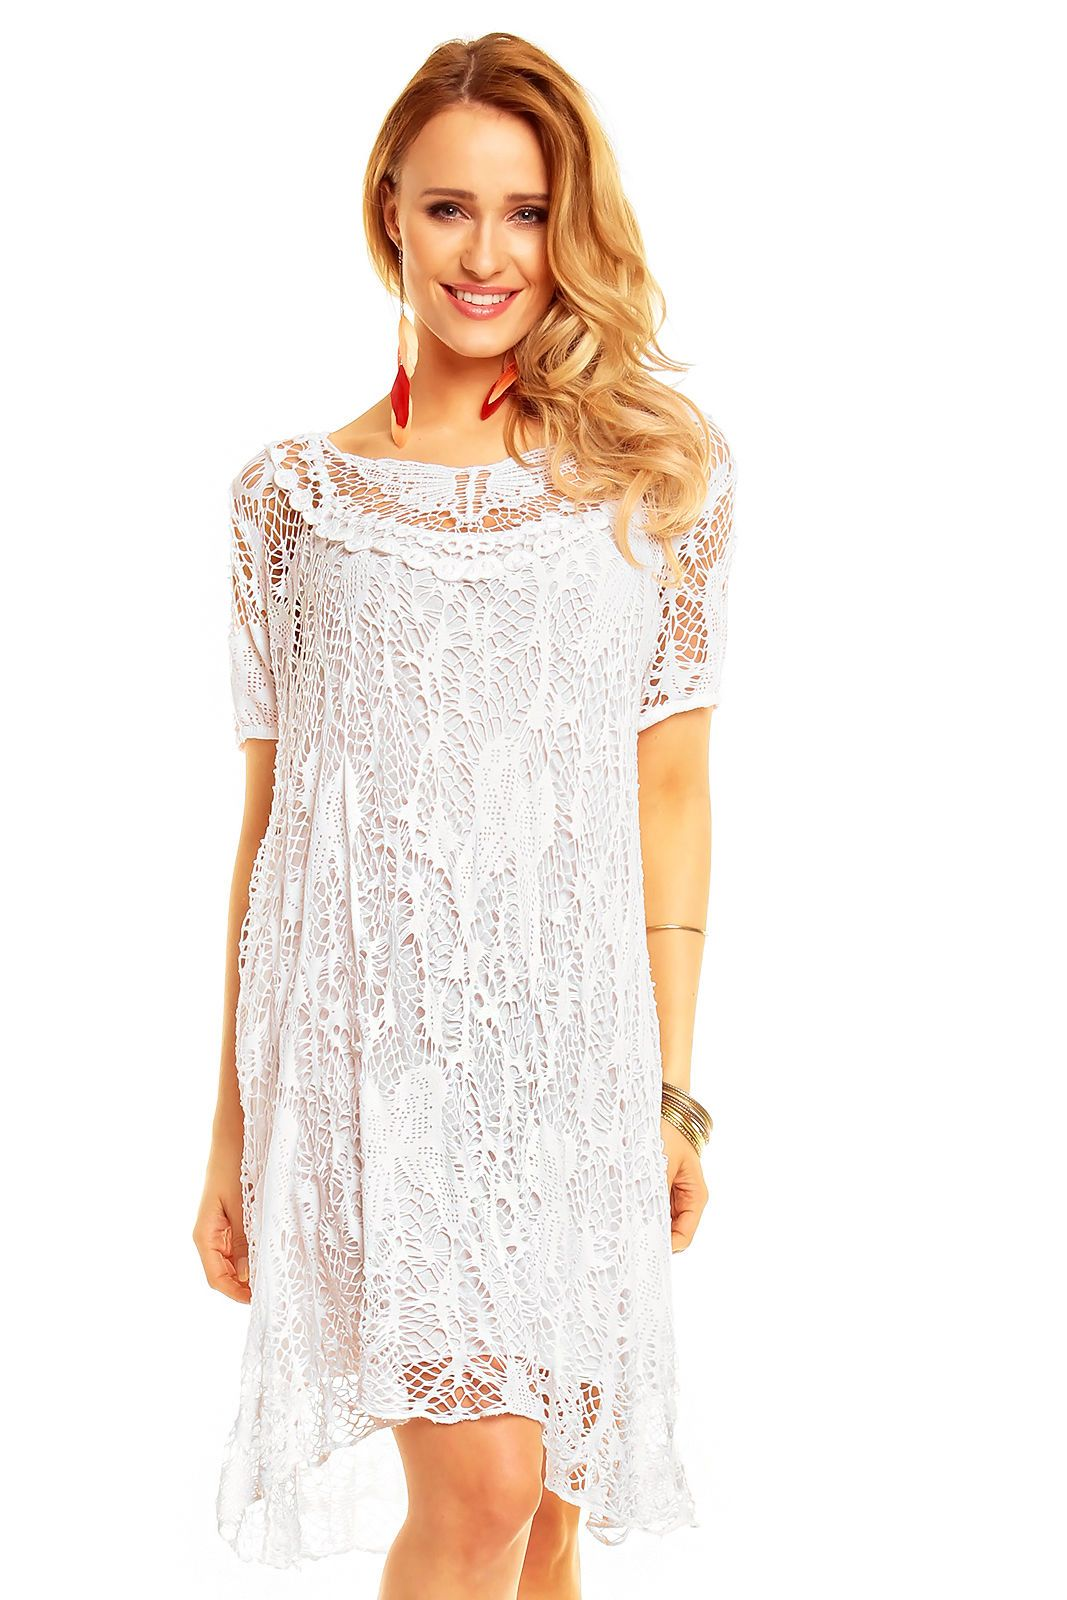 Details about Ladies Dress Long Tunic top Lagenlook Lace